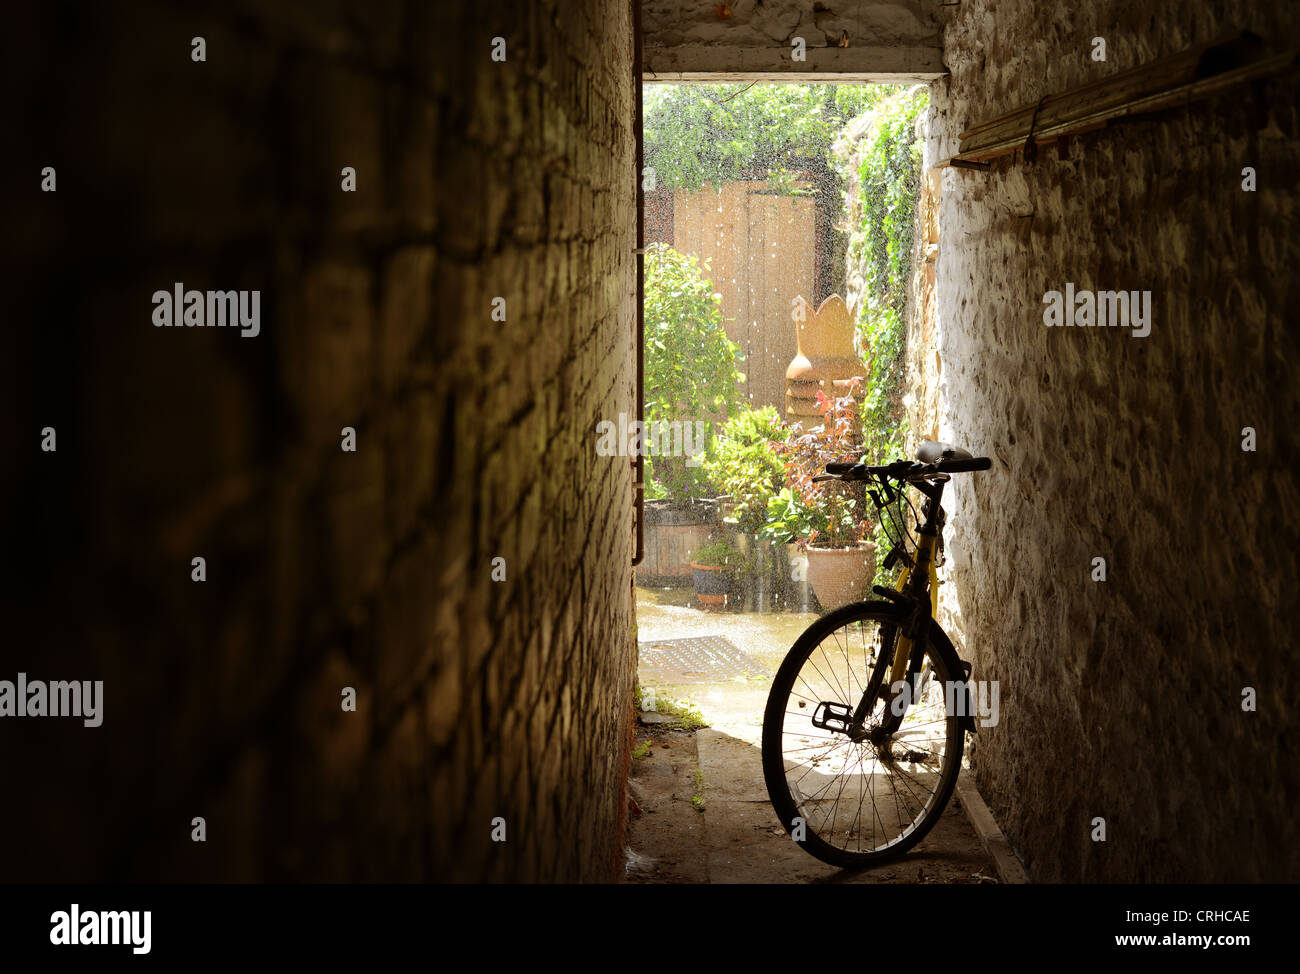 Bicycle sheltered from heavy rain in alleyway at side of house. Taken during a sudden downpour on a sunny day. - Stock Image